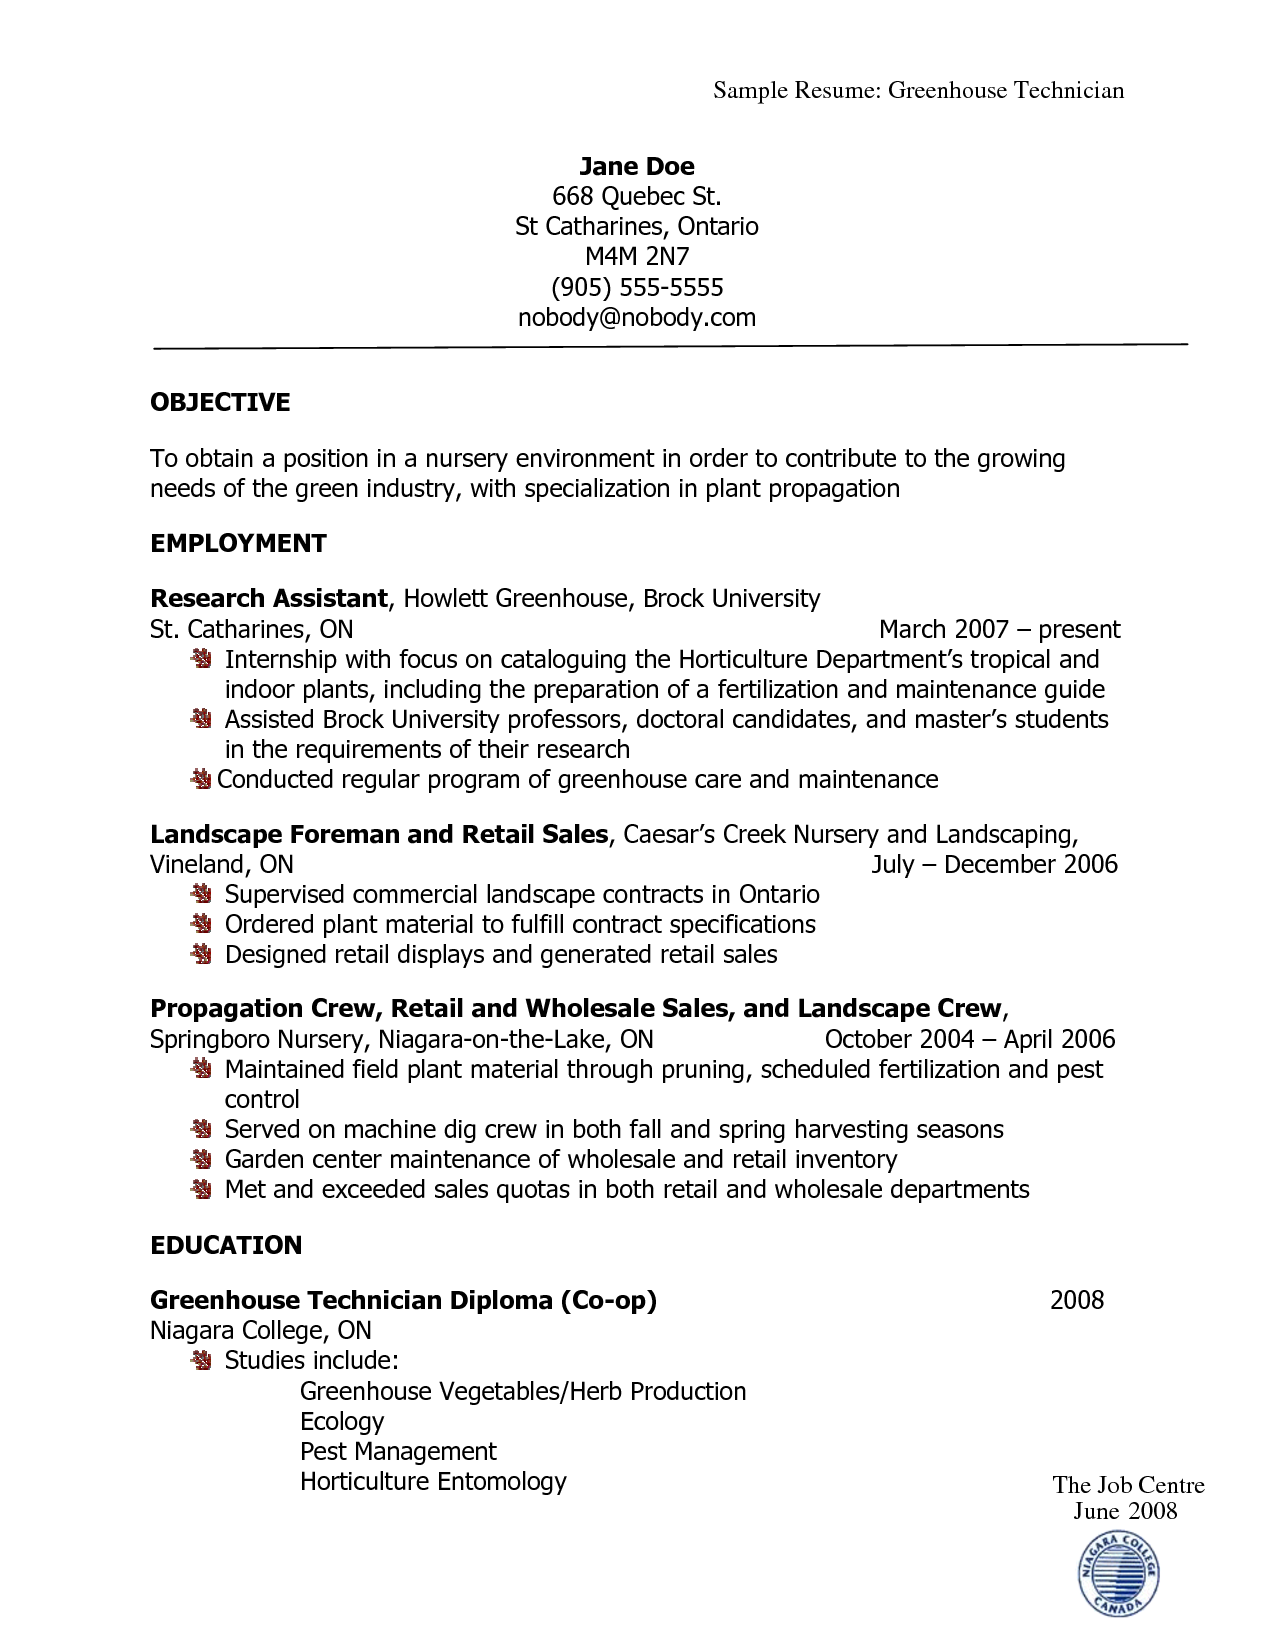 Resume Templates For Quebec - C.V. and Cover Letter